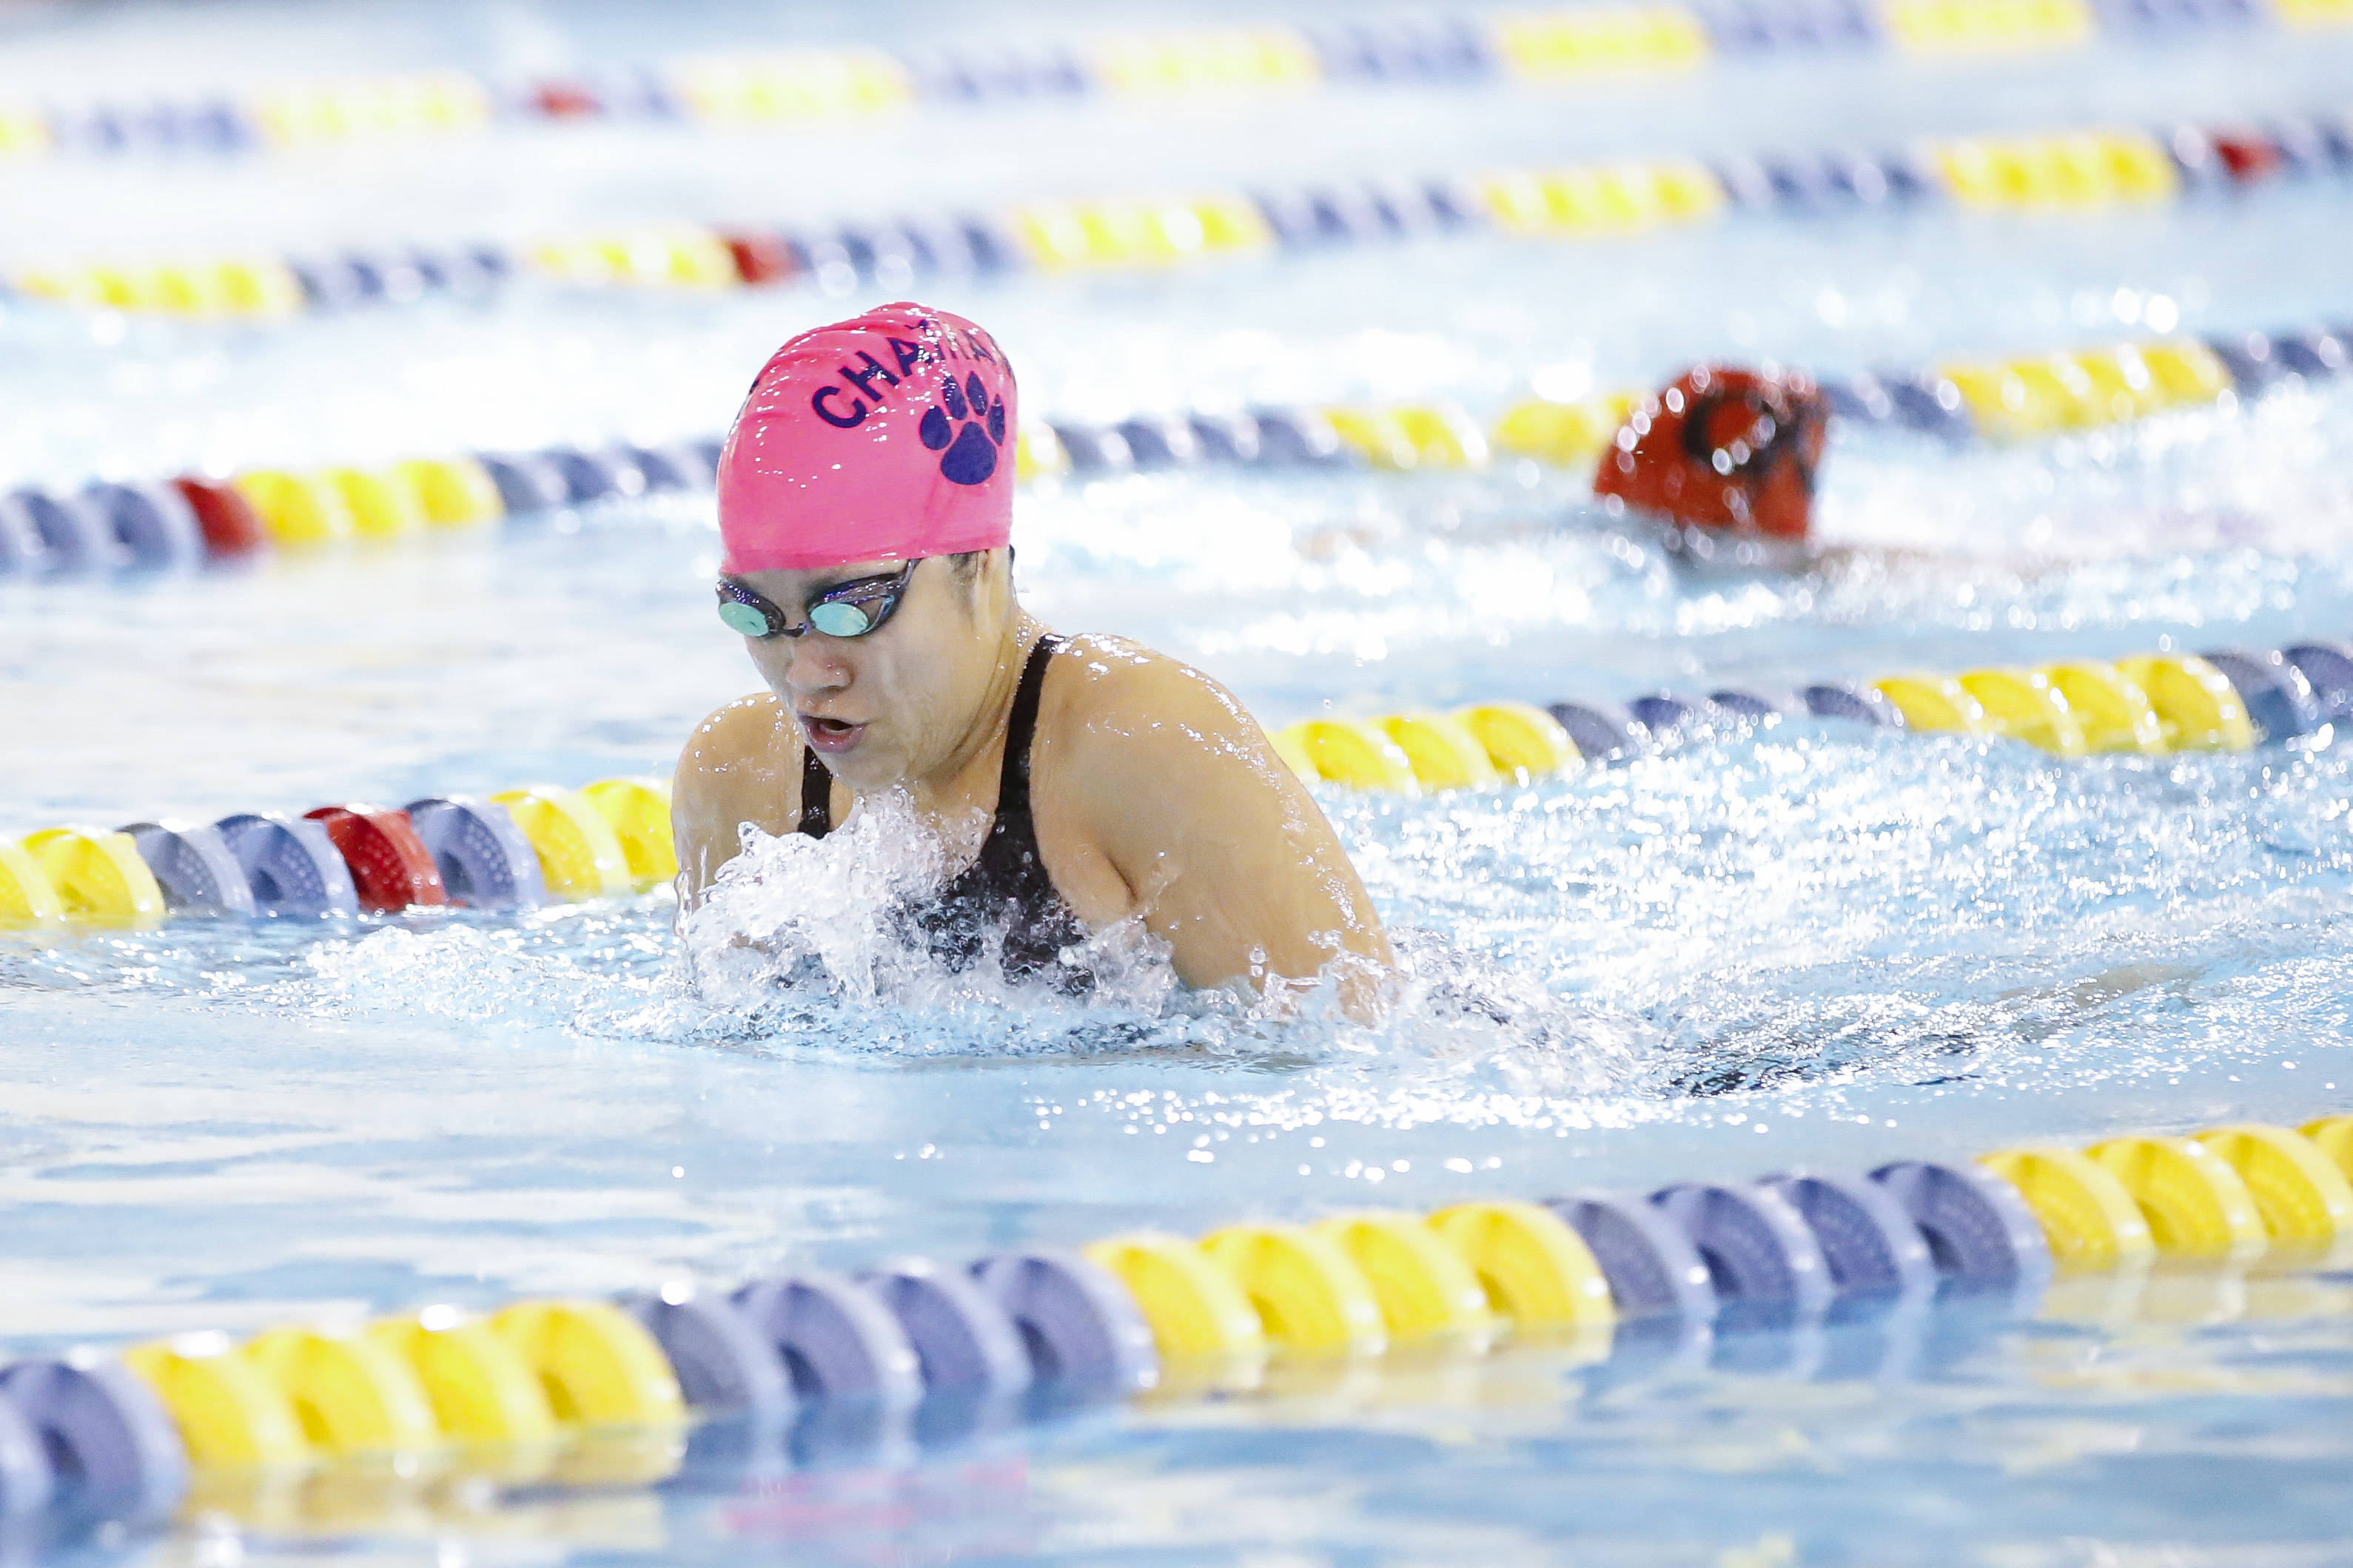 e9b7e4f3f2b0518d9335_e415f49c7c57fb0b3f0f_SwimChamps_Girls-3.jpg